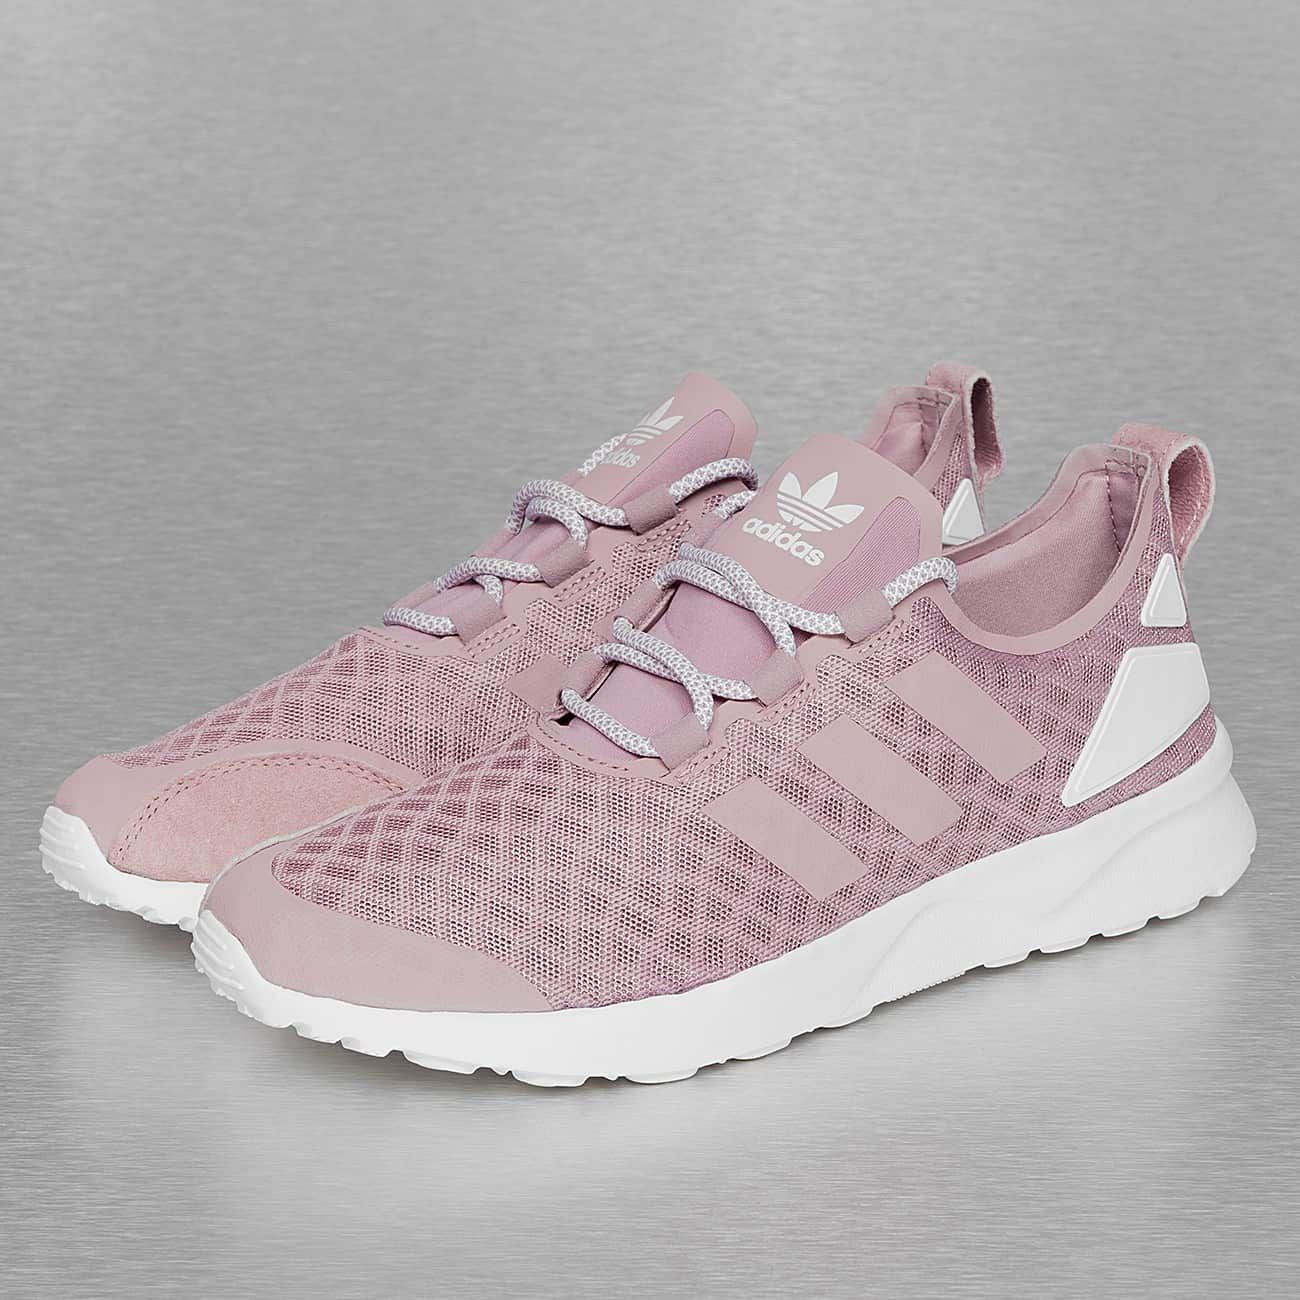 adidas zx flux adv verve en pourpre shoes pinterest adidas zx flux adidas zx and zx flux. Black Bedroom Furniture Sets. Home Design Ideas